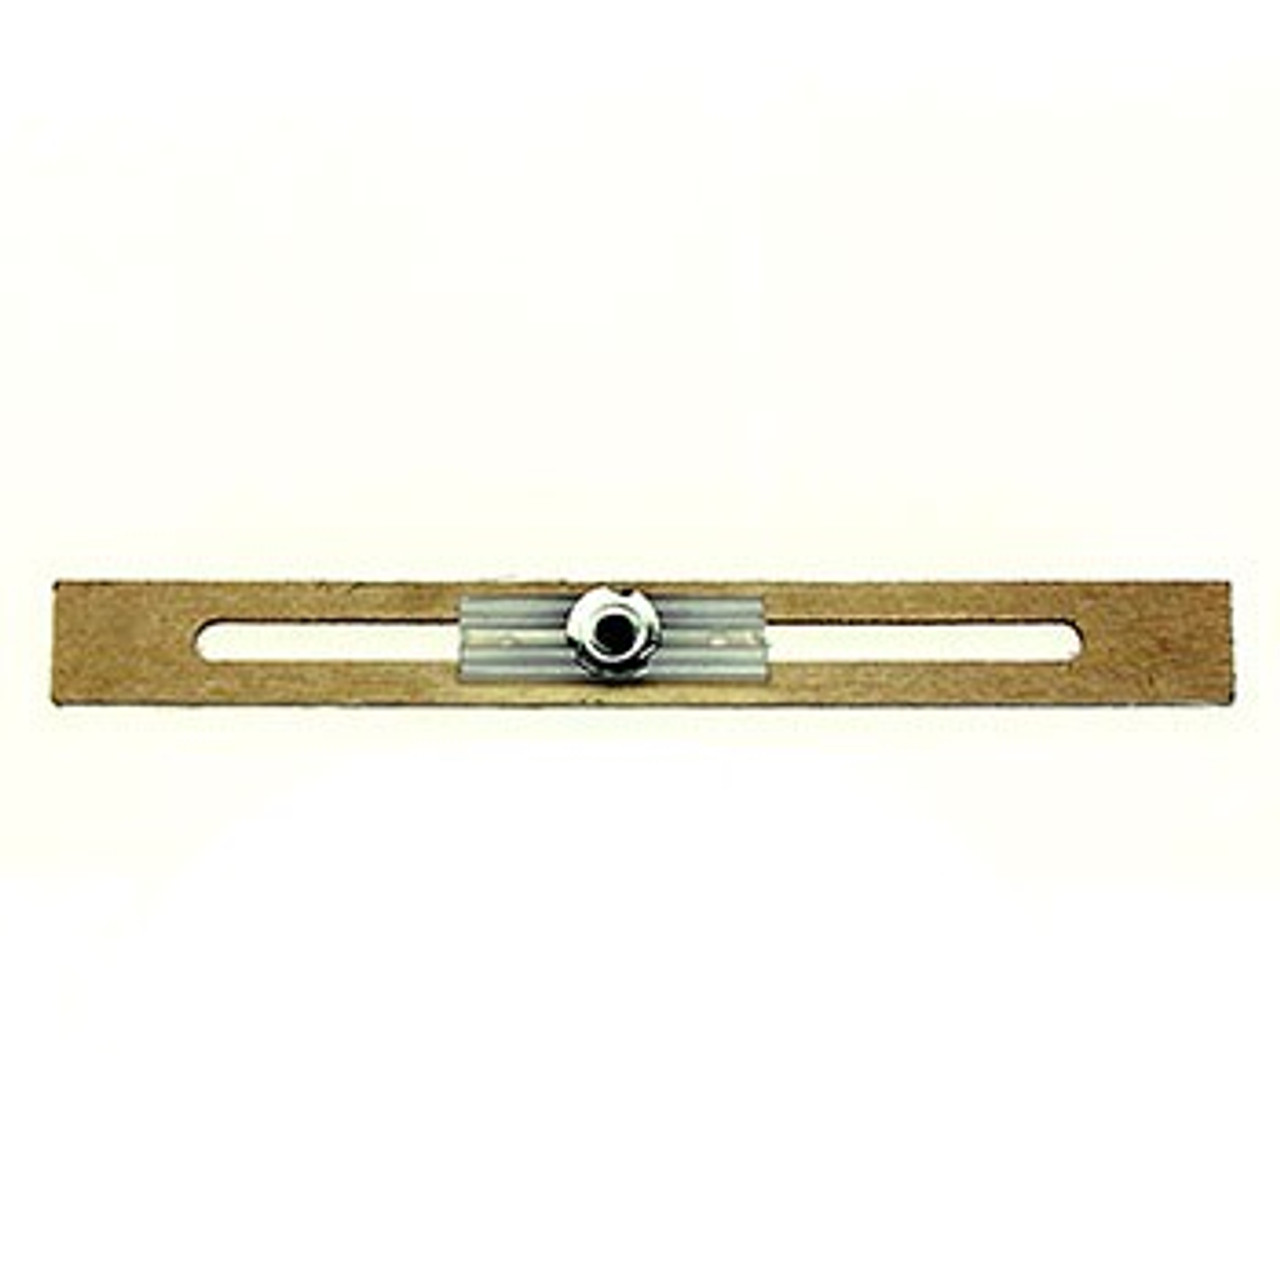 Leadout Guide - Dual - 2 Line Adjustable - (BH-760)